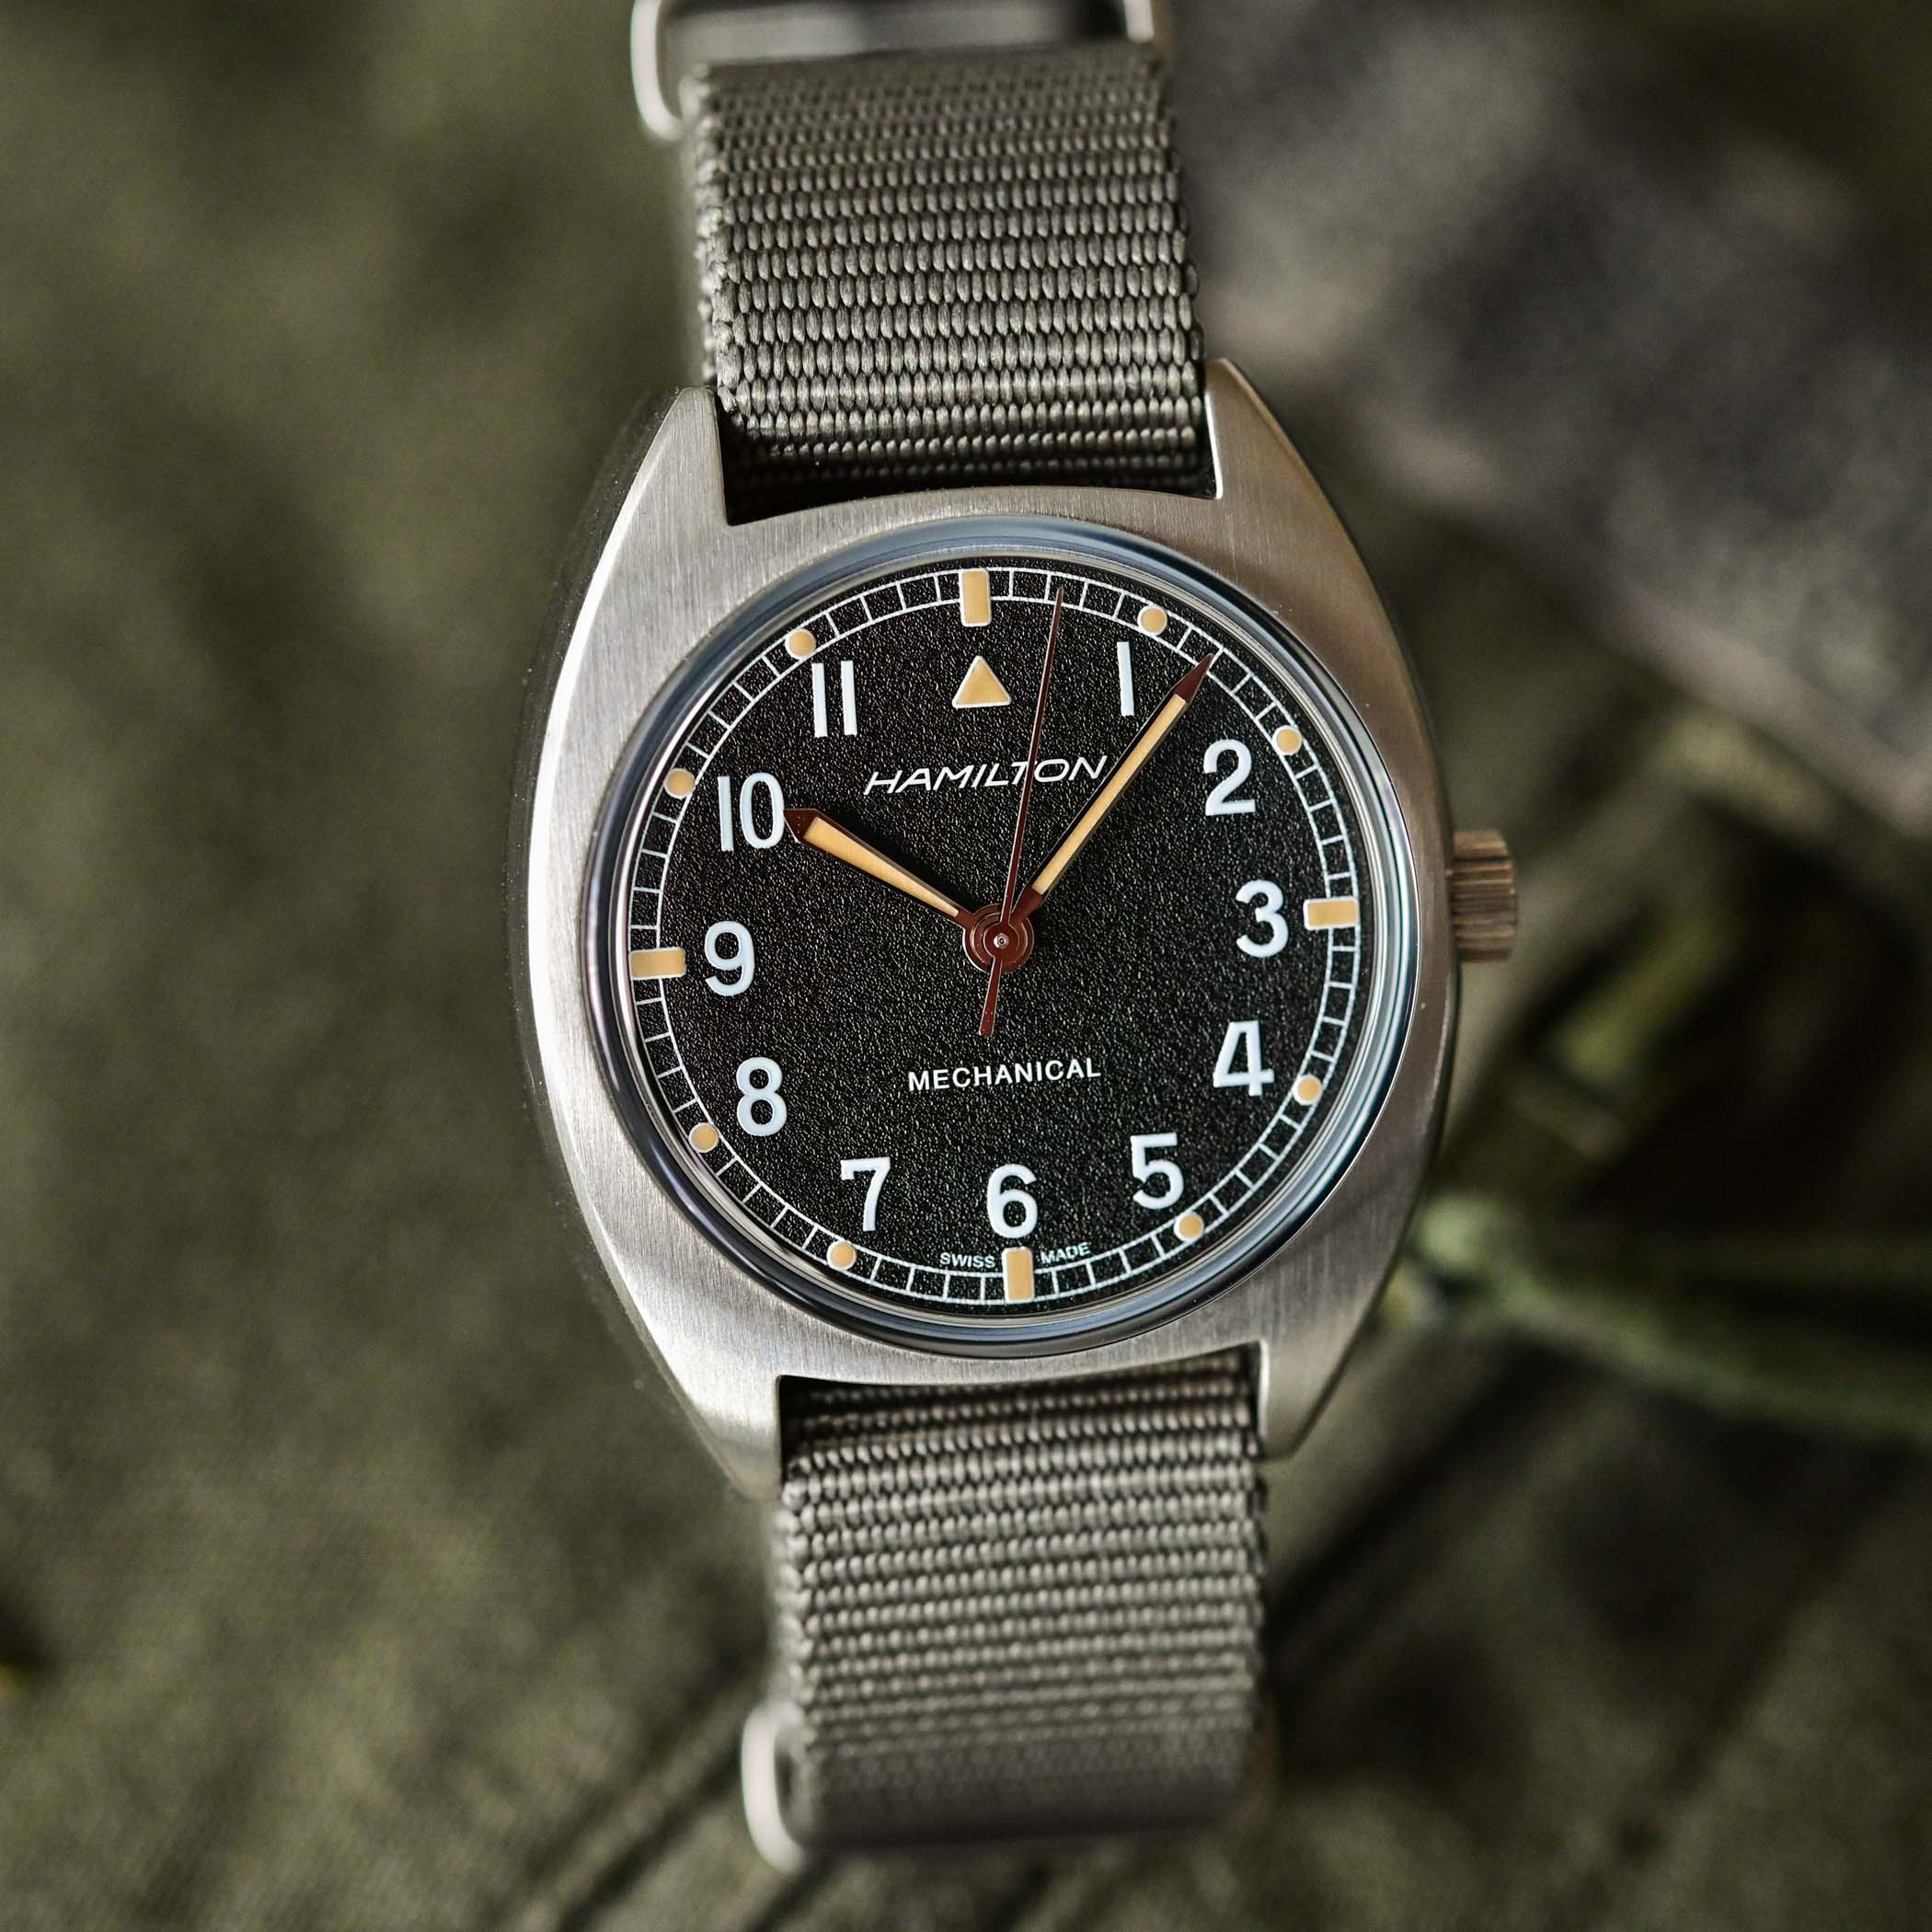 battle of accessible British military-inspired watches - comparative review Hamilton Khaki Pilot Pioneer Mechanical versus Timor Heritage Field - 8